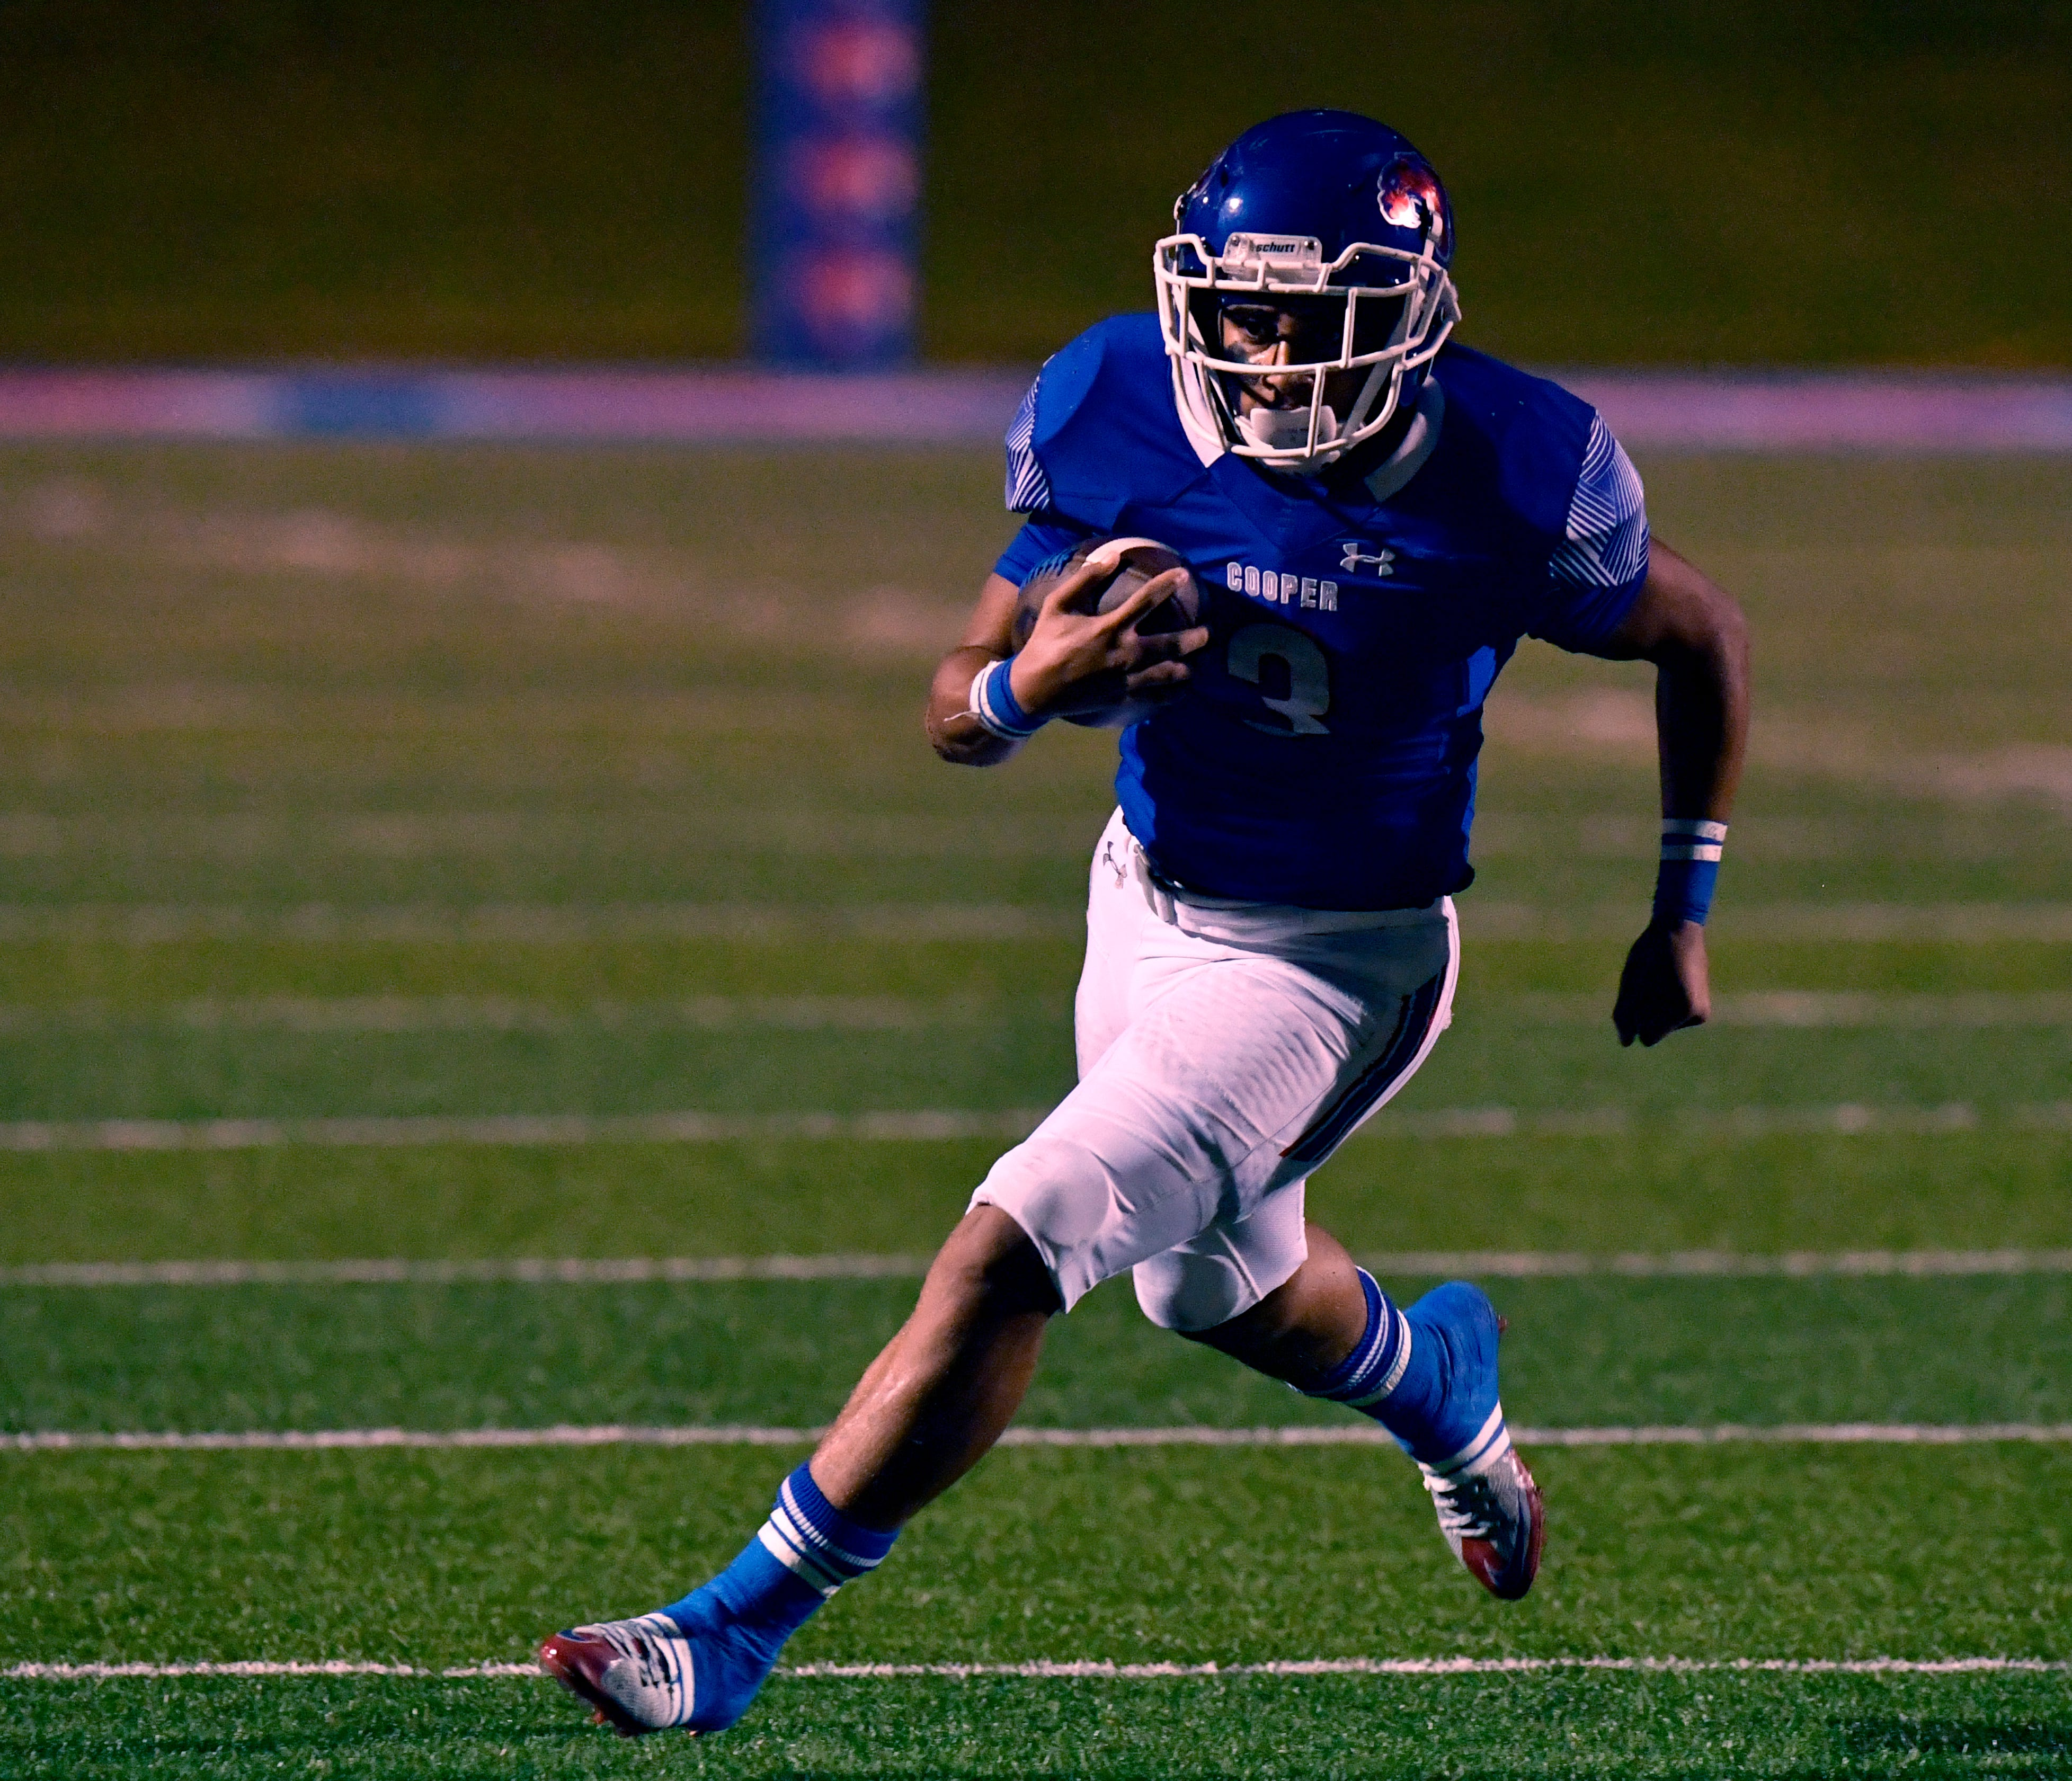 Cougars running back Noah Garcia carries the ball downfield during Cooper High's game against Caprock High Friday Oct. 19, 2018. Final score was 28-12, Cooper.